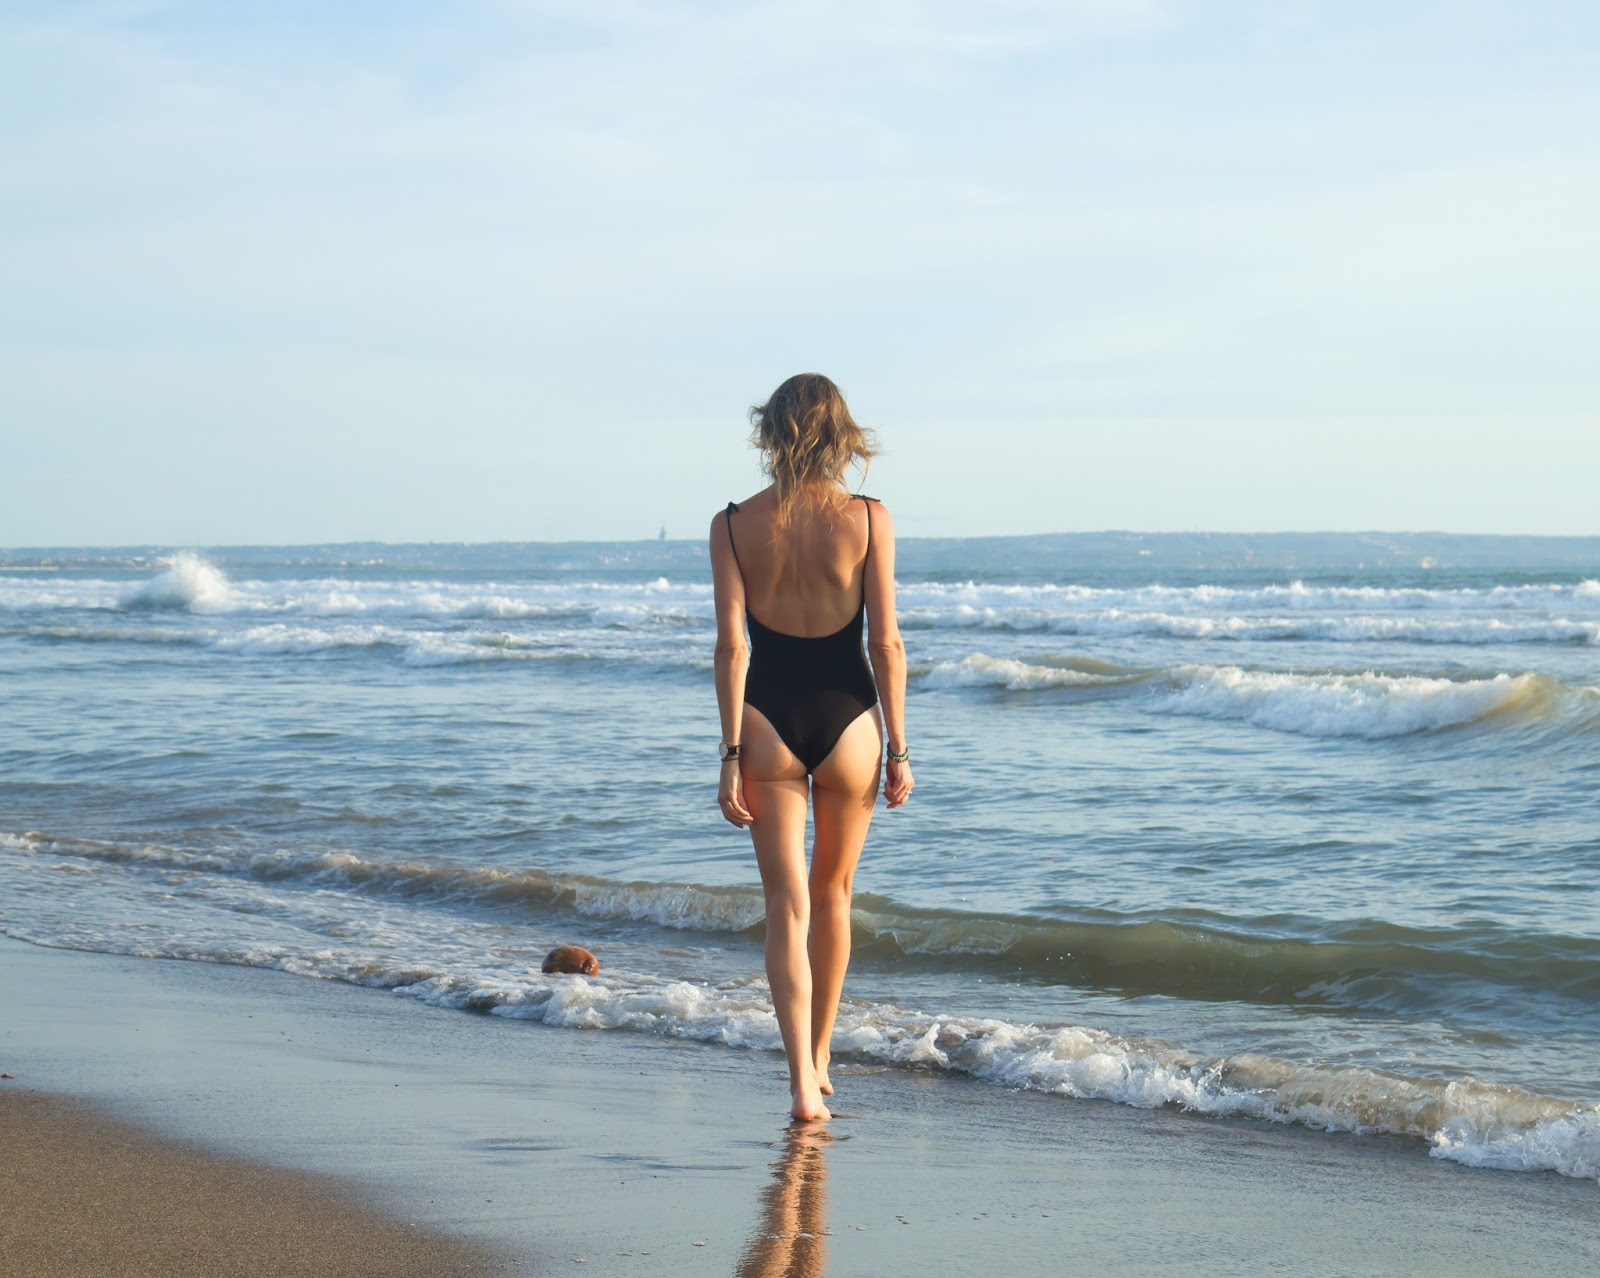 Fashion and Travel blogger, Alison Hutchinson, wearing a one-piece swimsuit at sunset